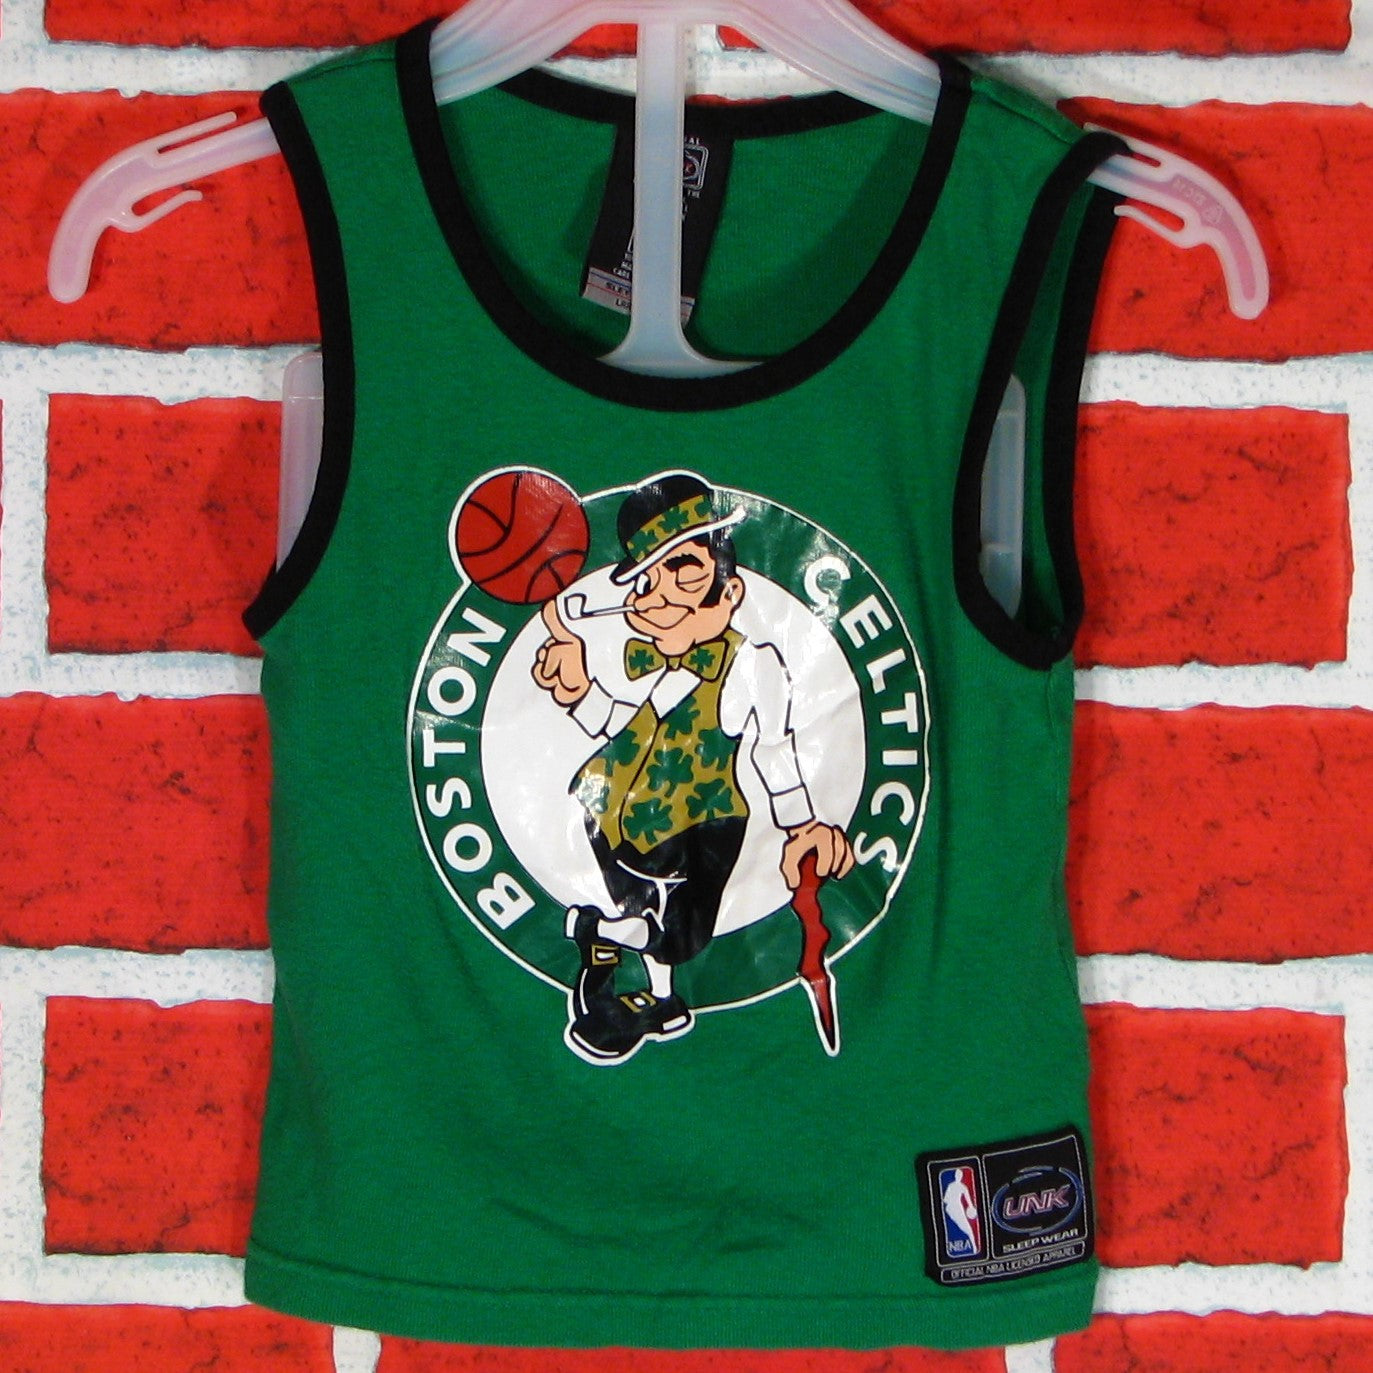 Boston Celtics T-Shirt Shorts/sleepwear set Toddler